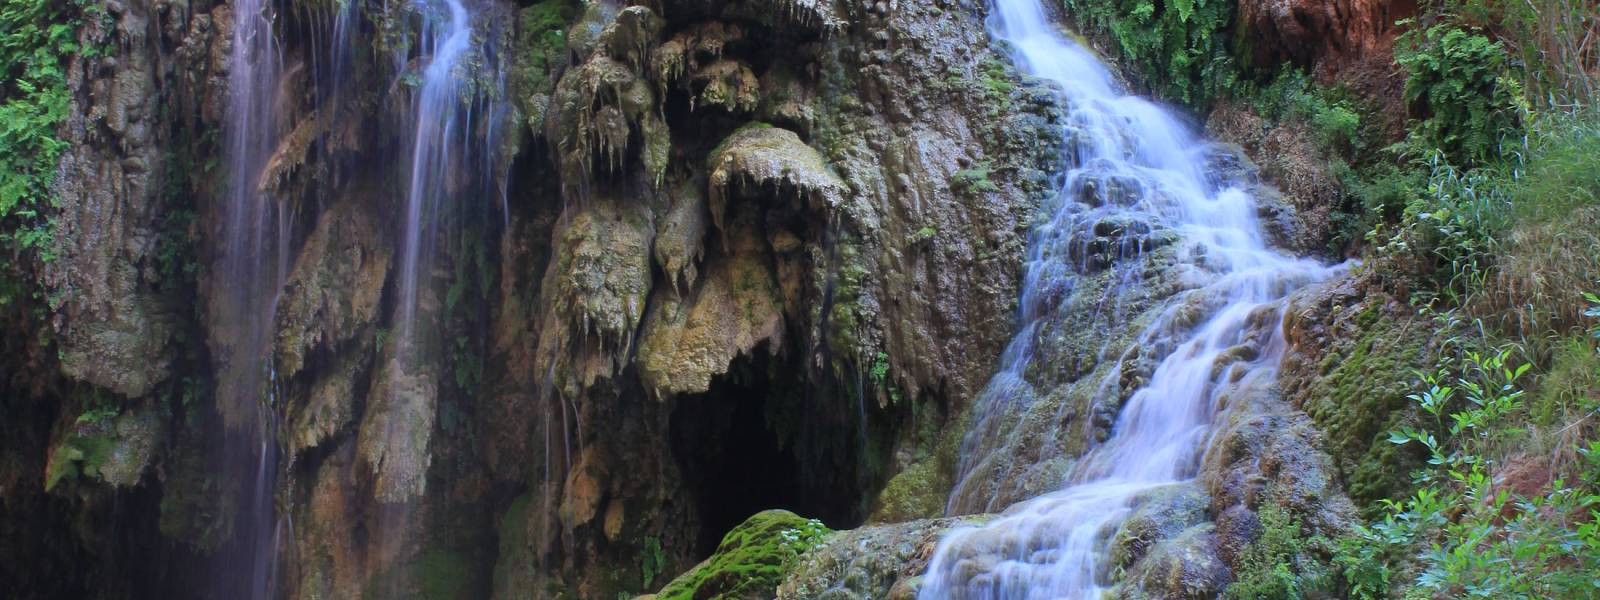 a large waterfall next to a rock